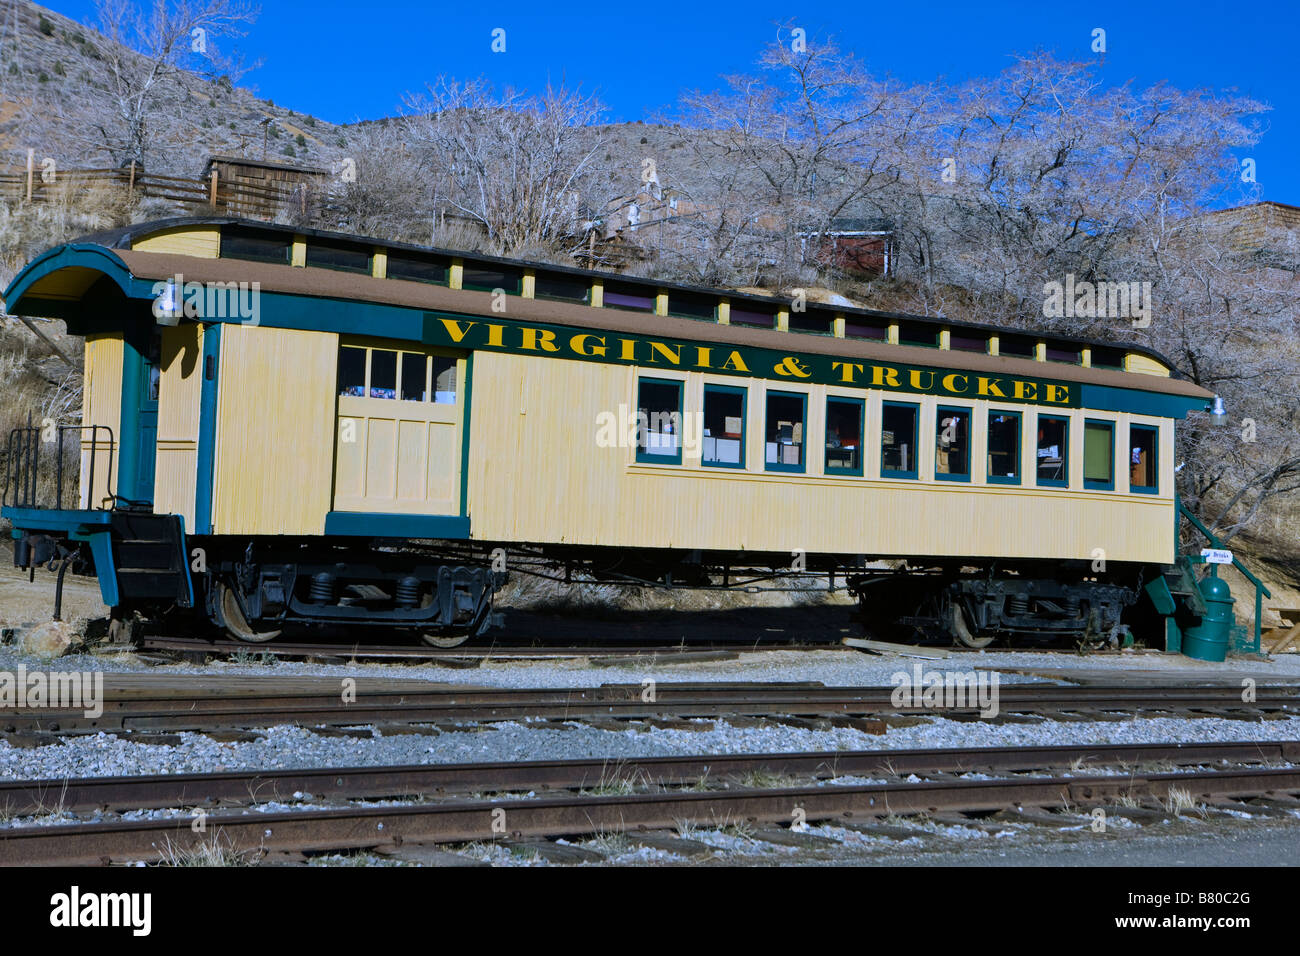 A rail car for the Virginia and Truckee Railroad sits on tracks in Virginia City Nevada - Stock Image